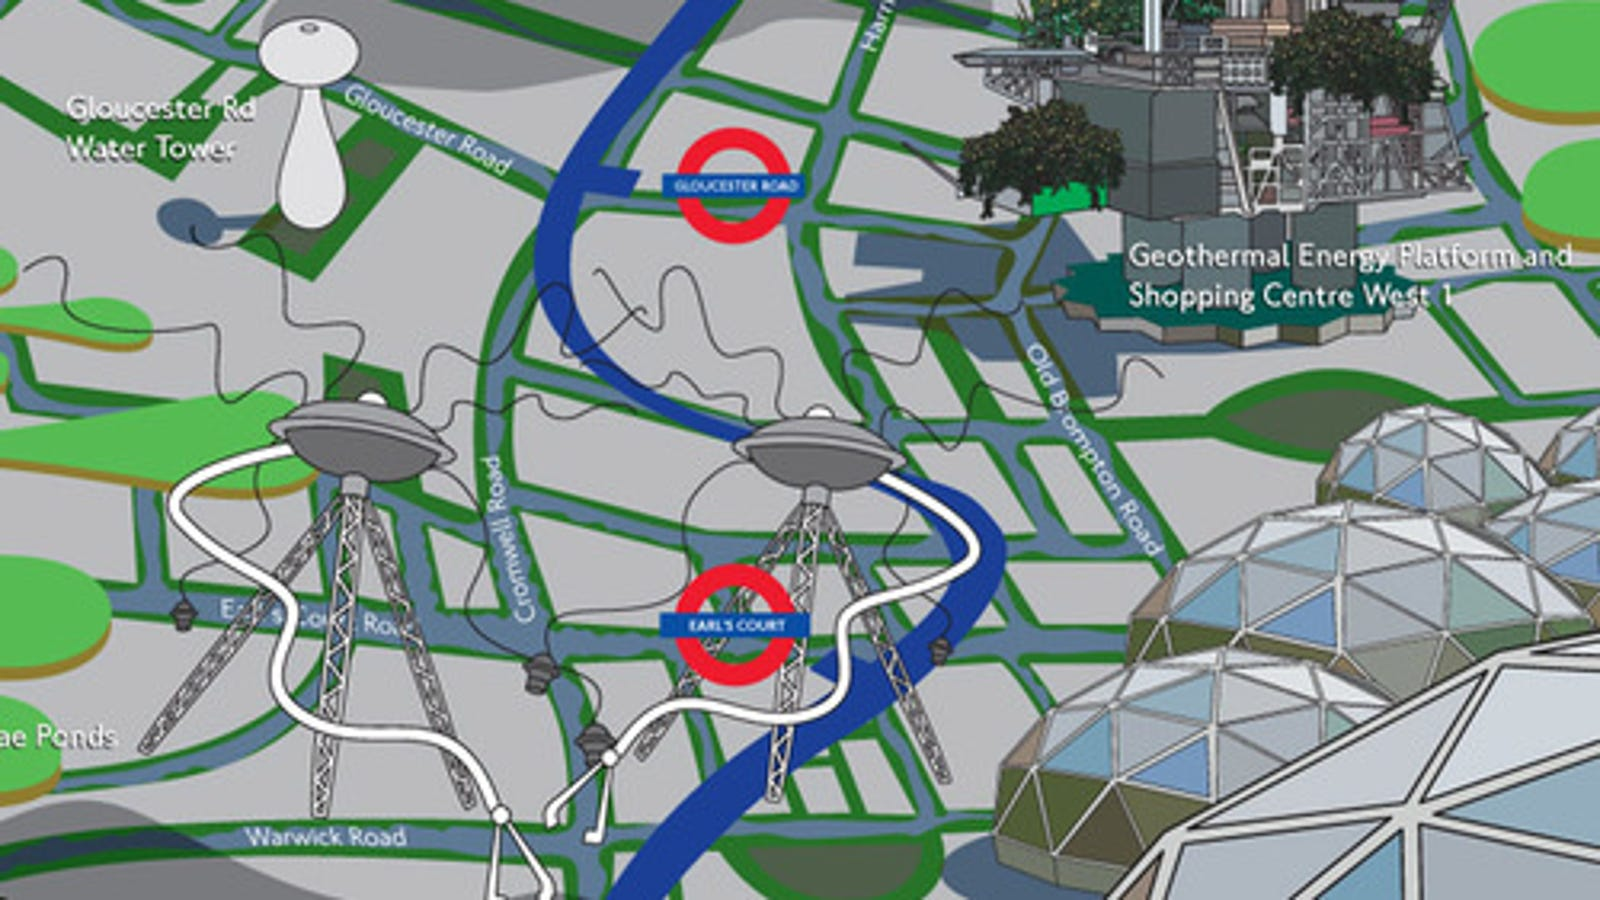 London City Tourist Map.A 2050 Tourist Map Of The Picadilly Line In London